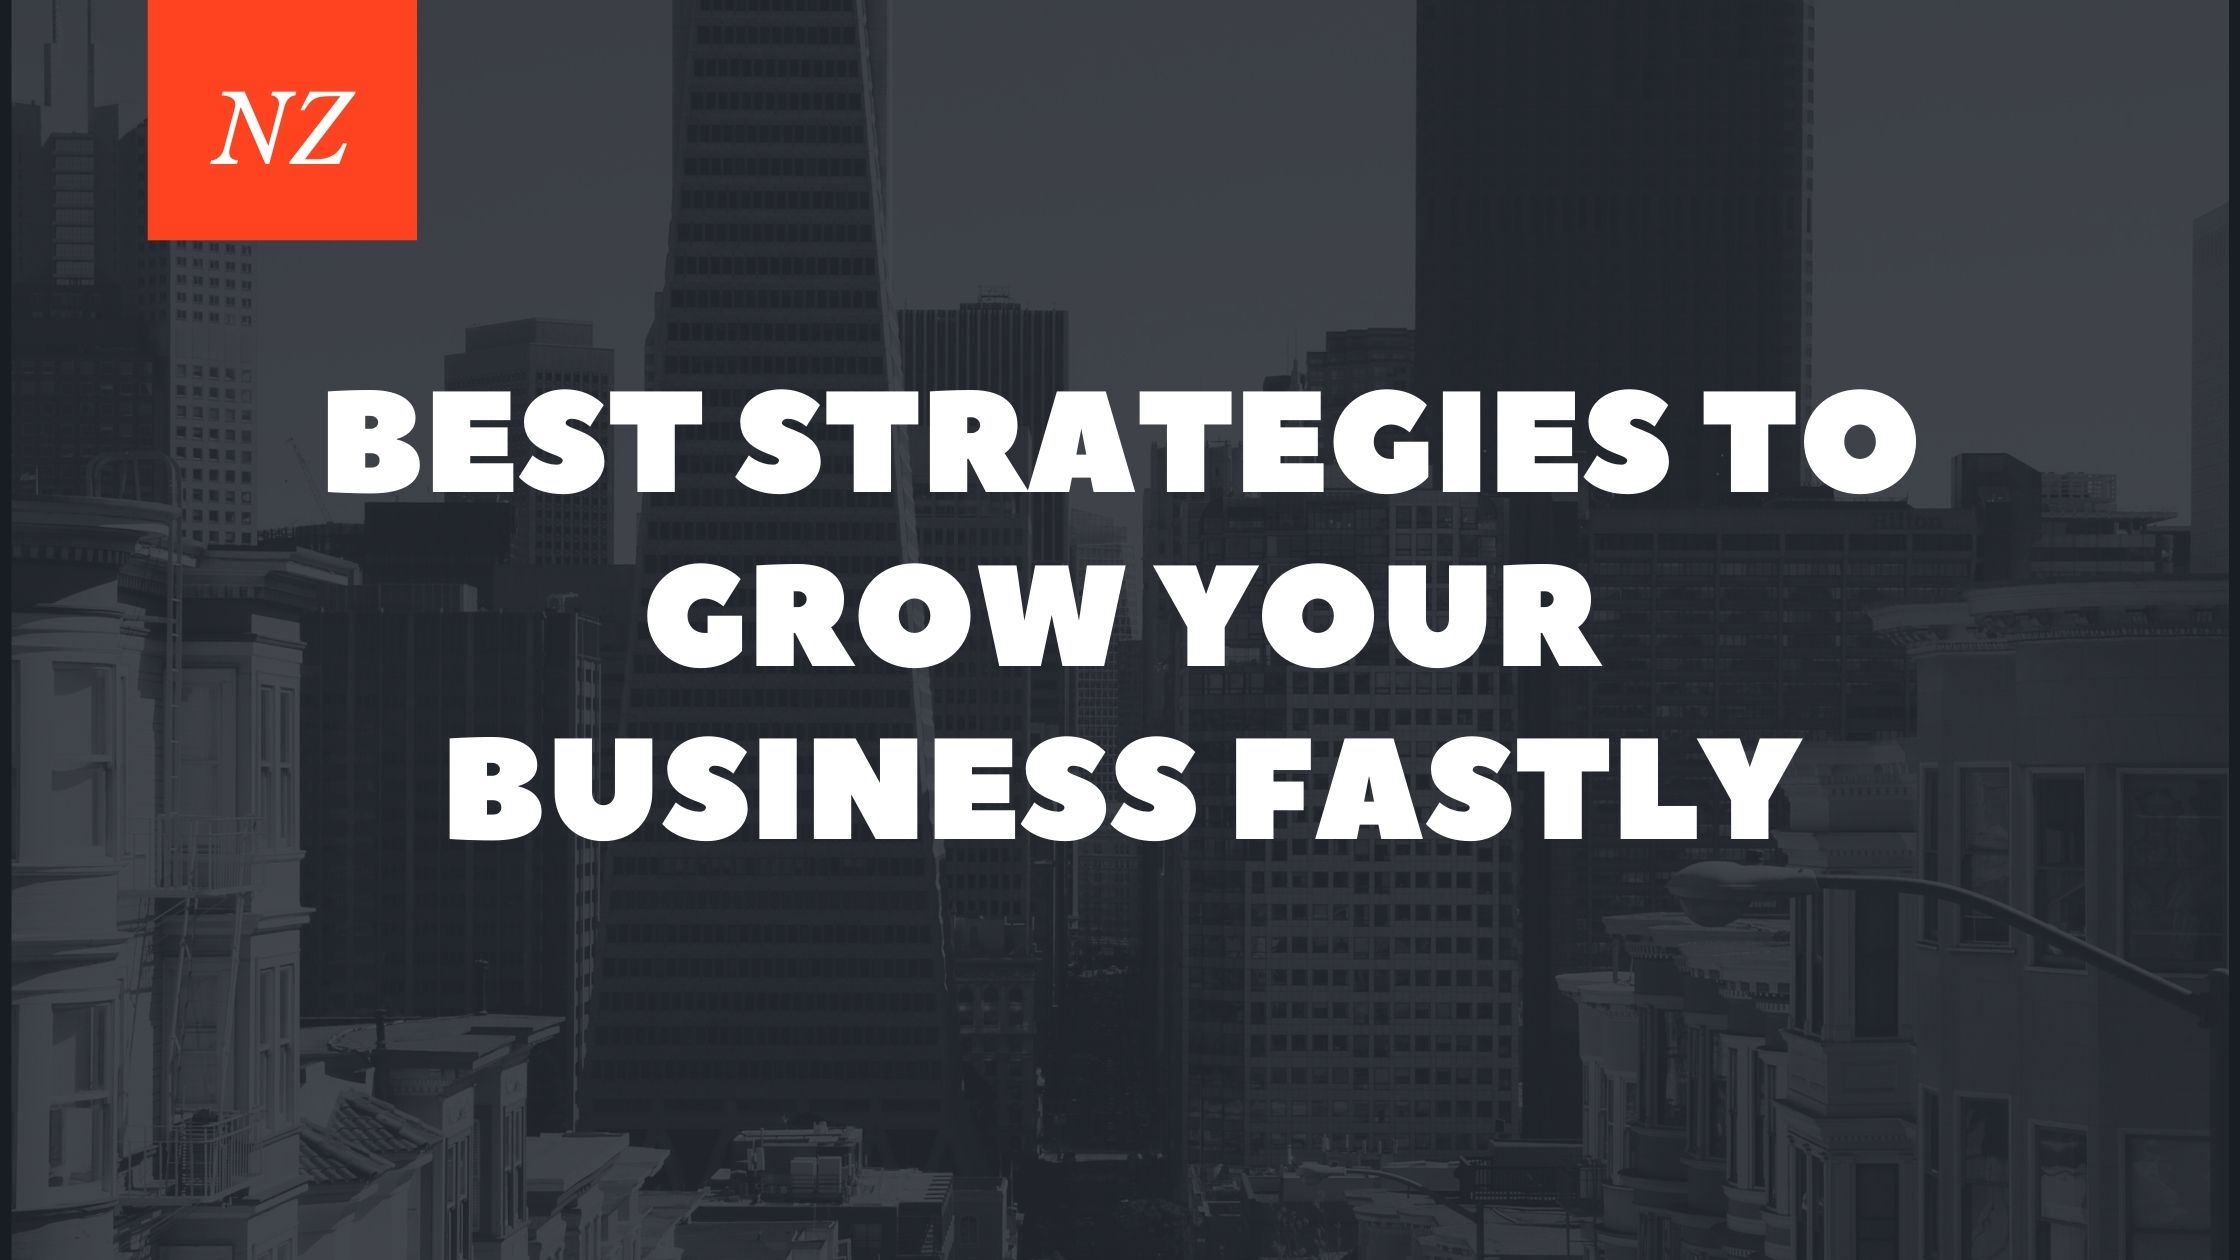 Best Strategies to Grow Your Business Fastly